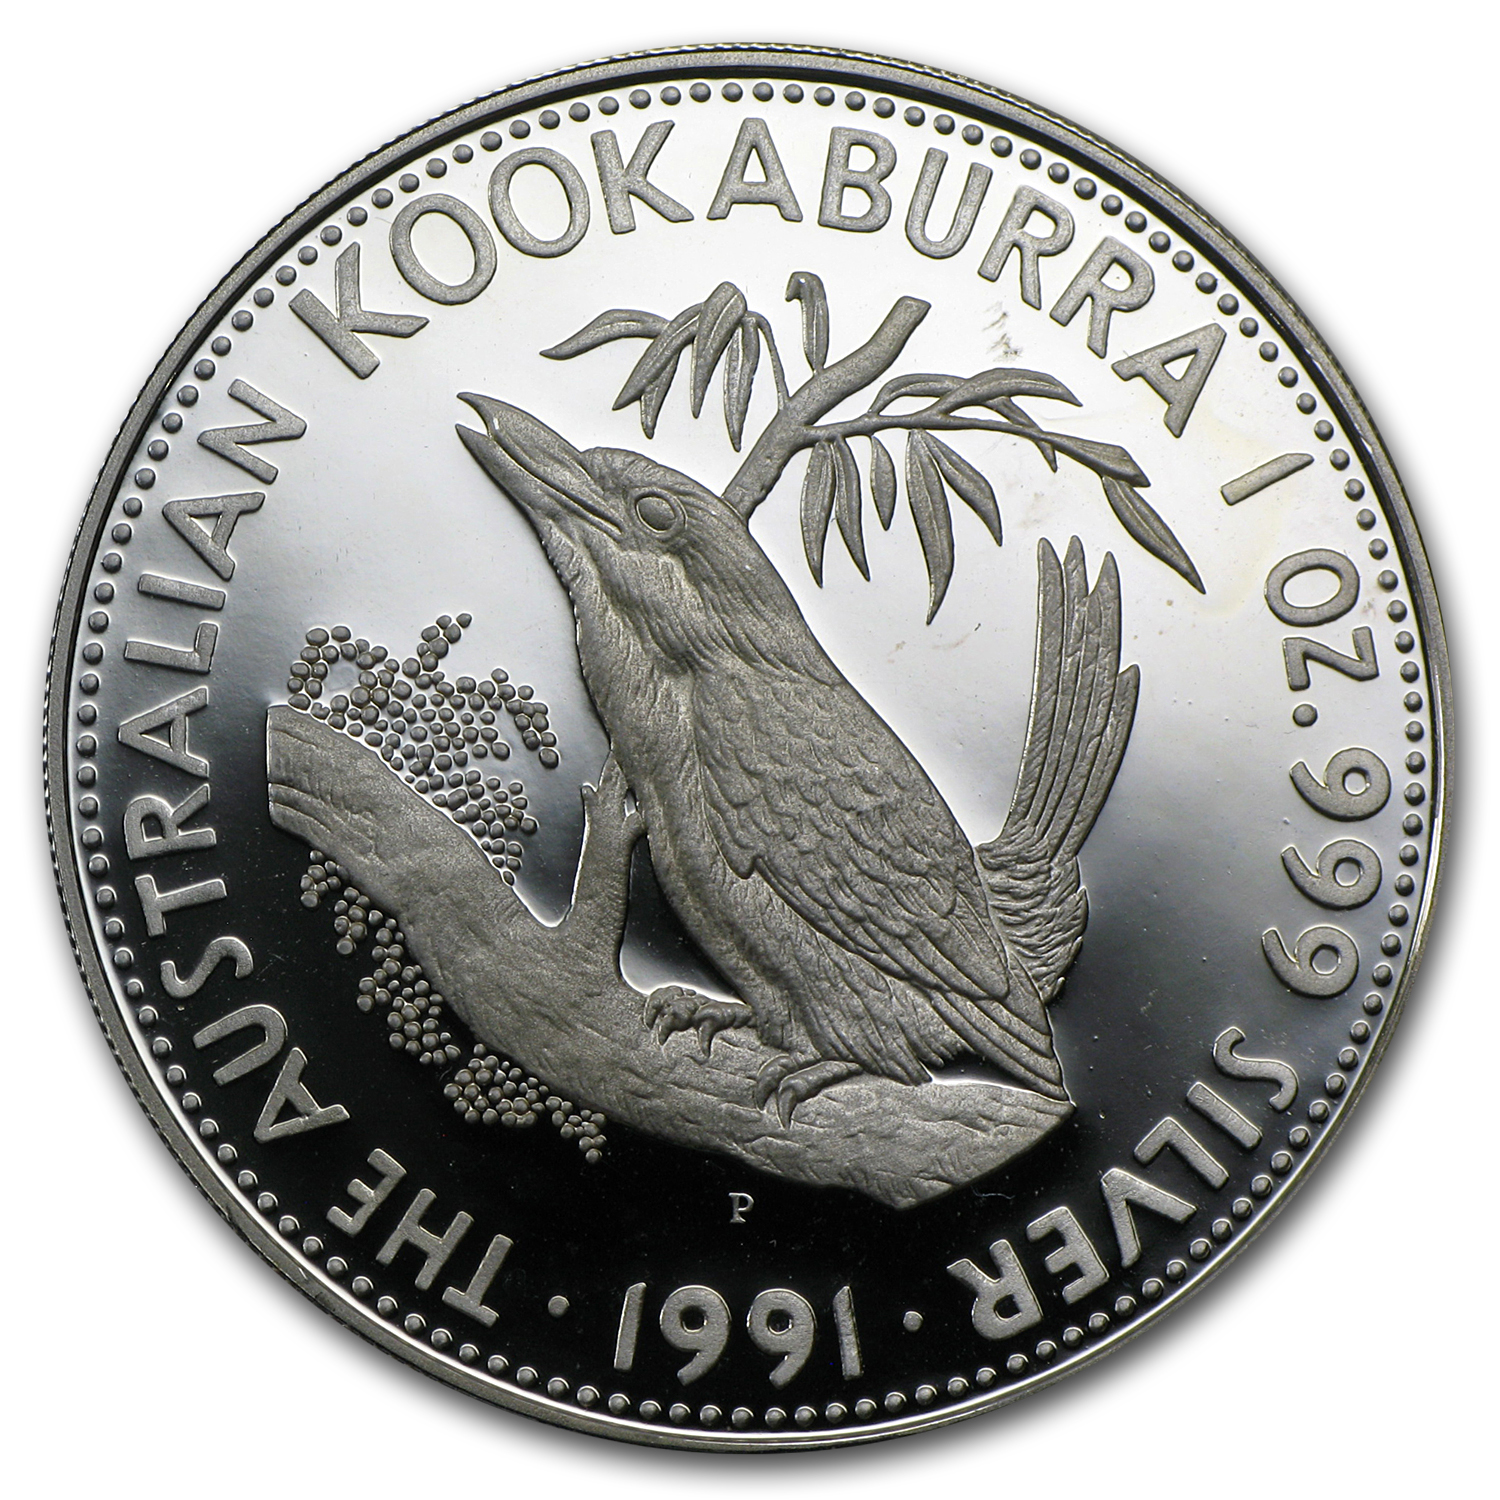 1991 1 oz Silver Australian Kookaburra Proof (Light Abrasions)